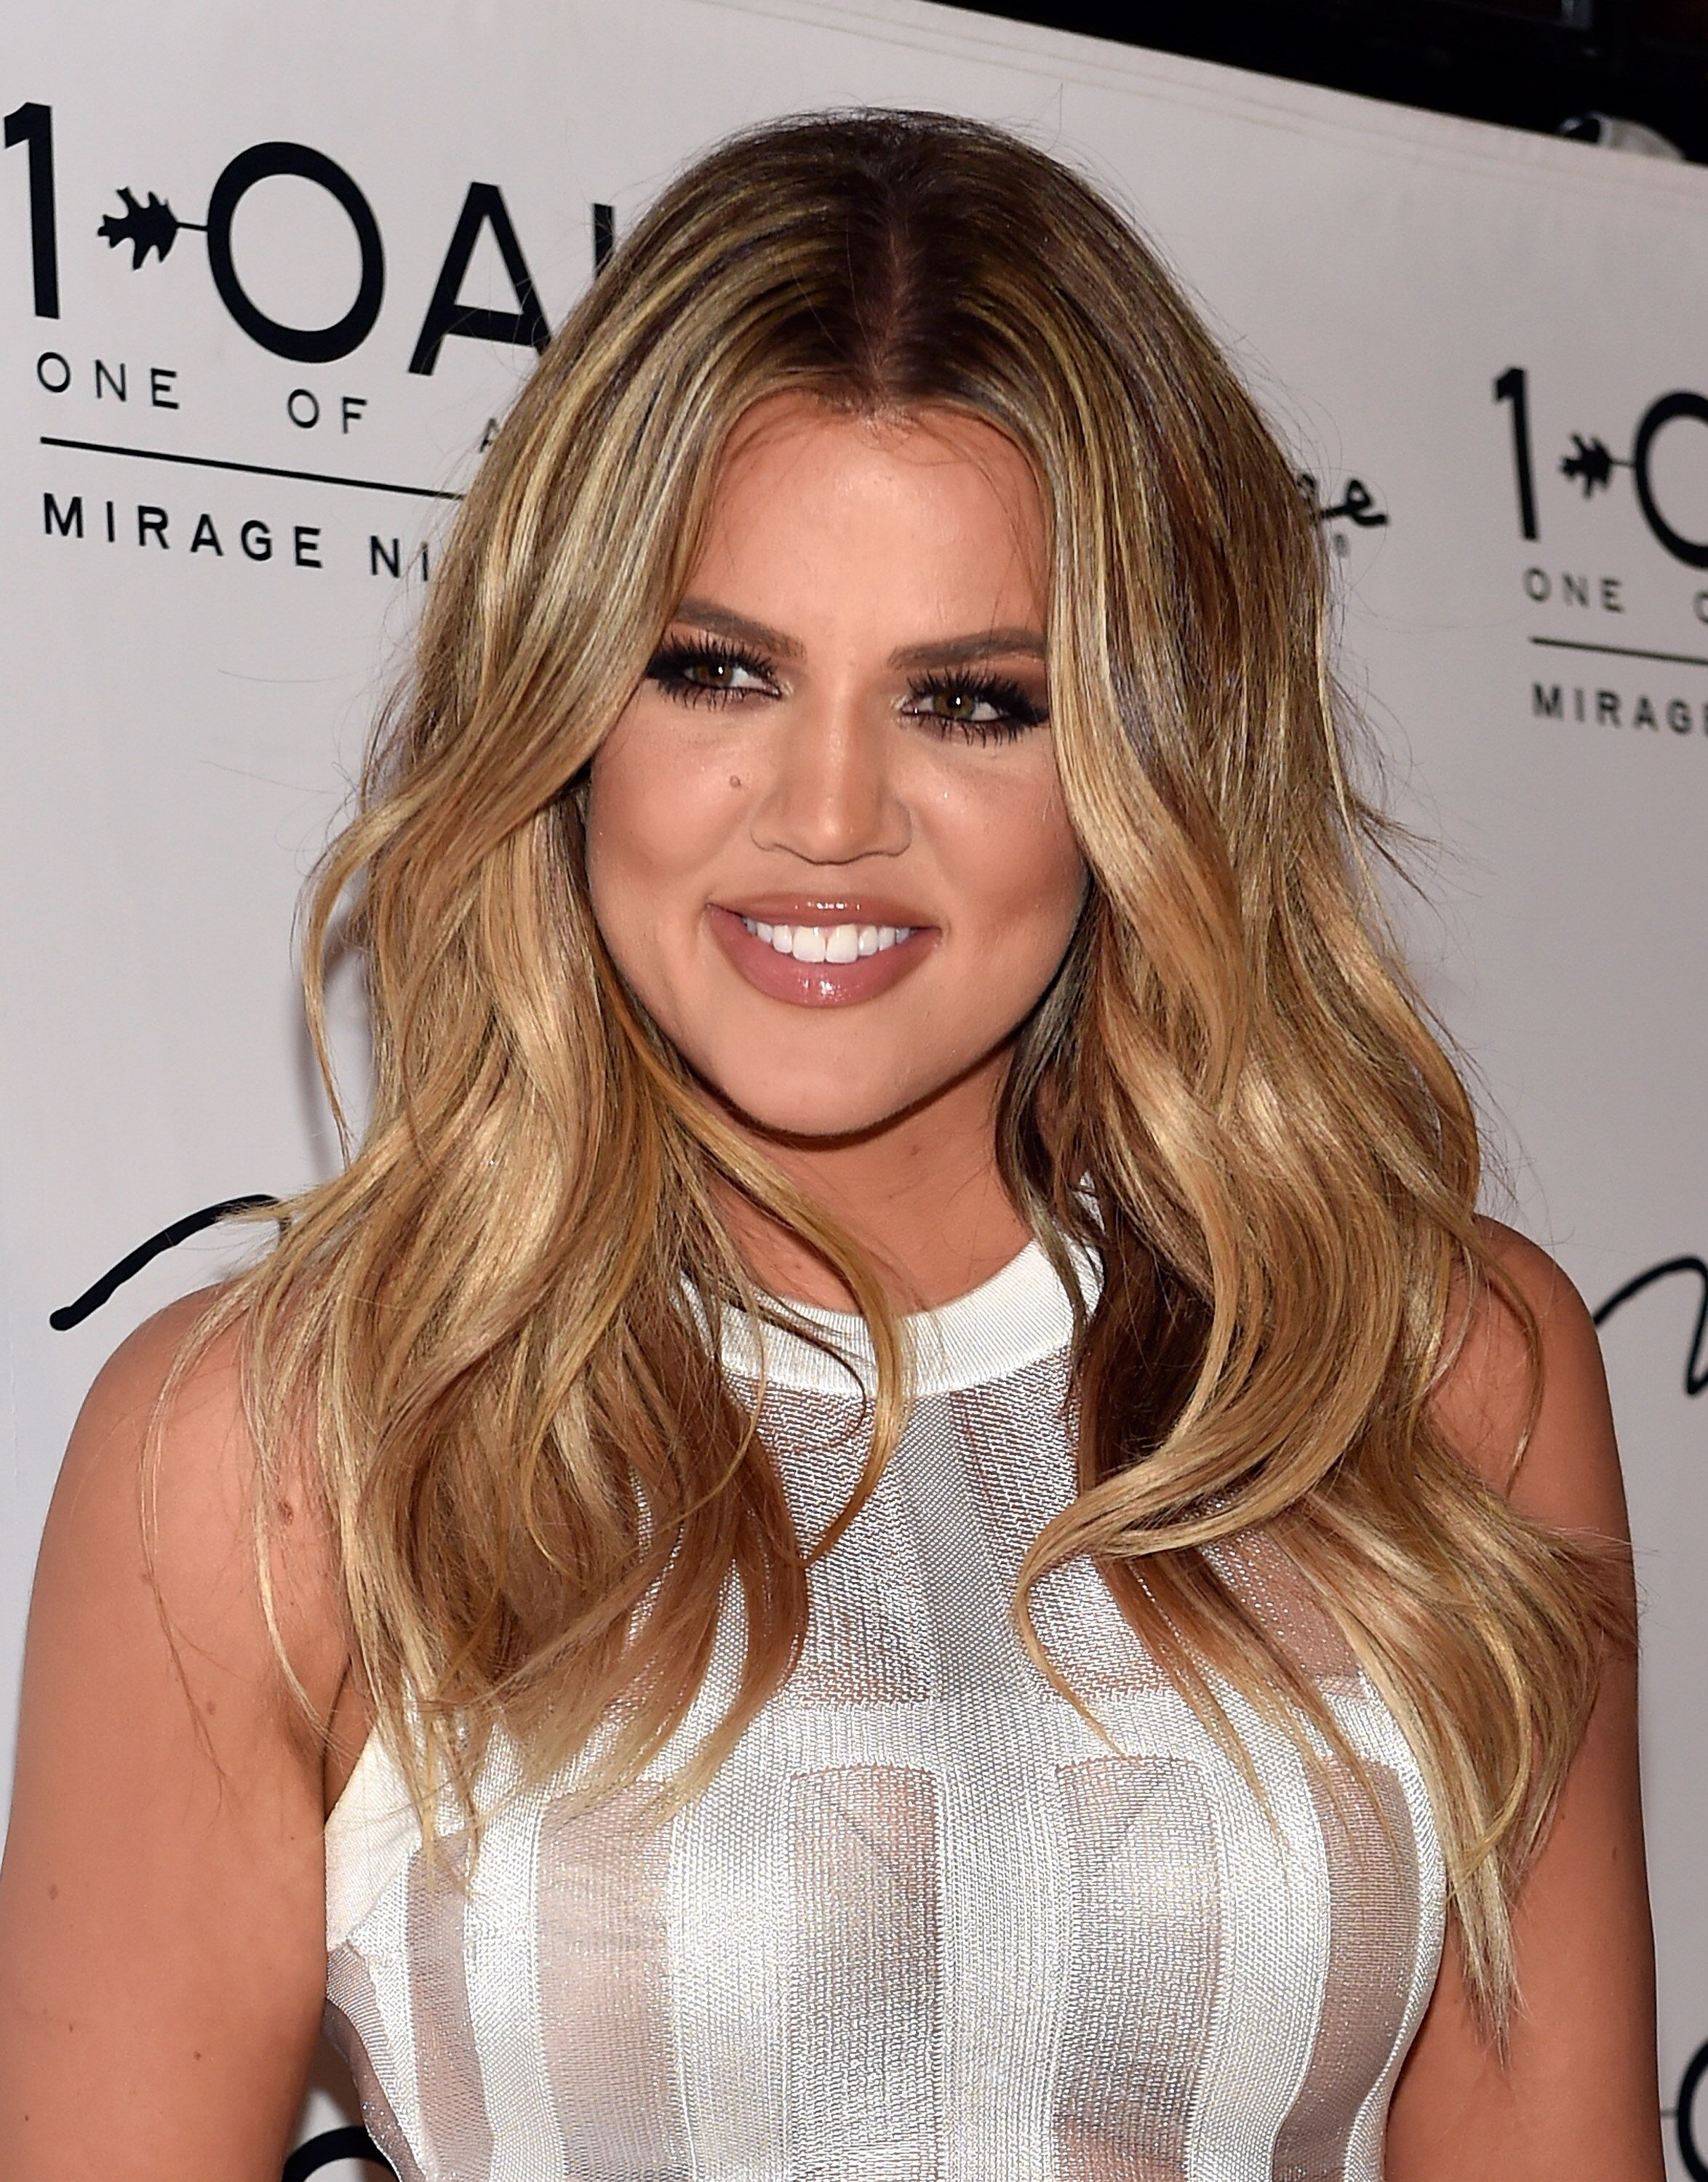 Khloe Kardashian at 1 OAK Nightclub on March 21, 2015, in Las Vegas, Nevada | Photo: Getty Images